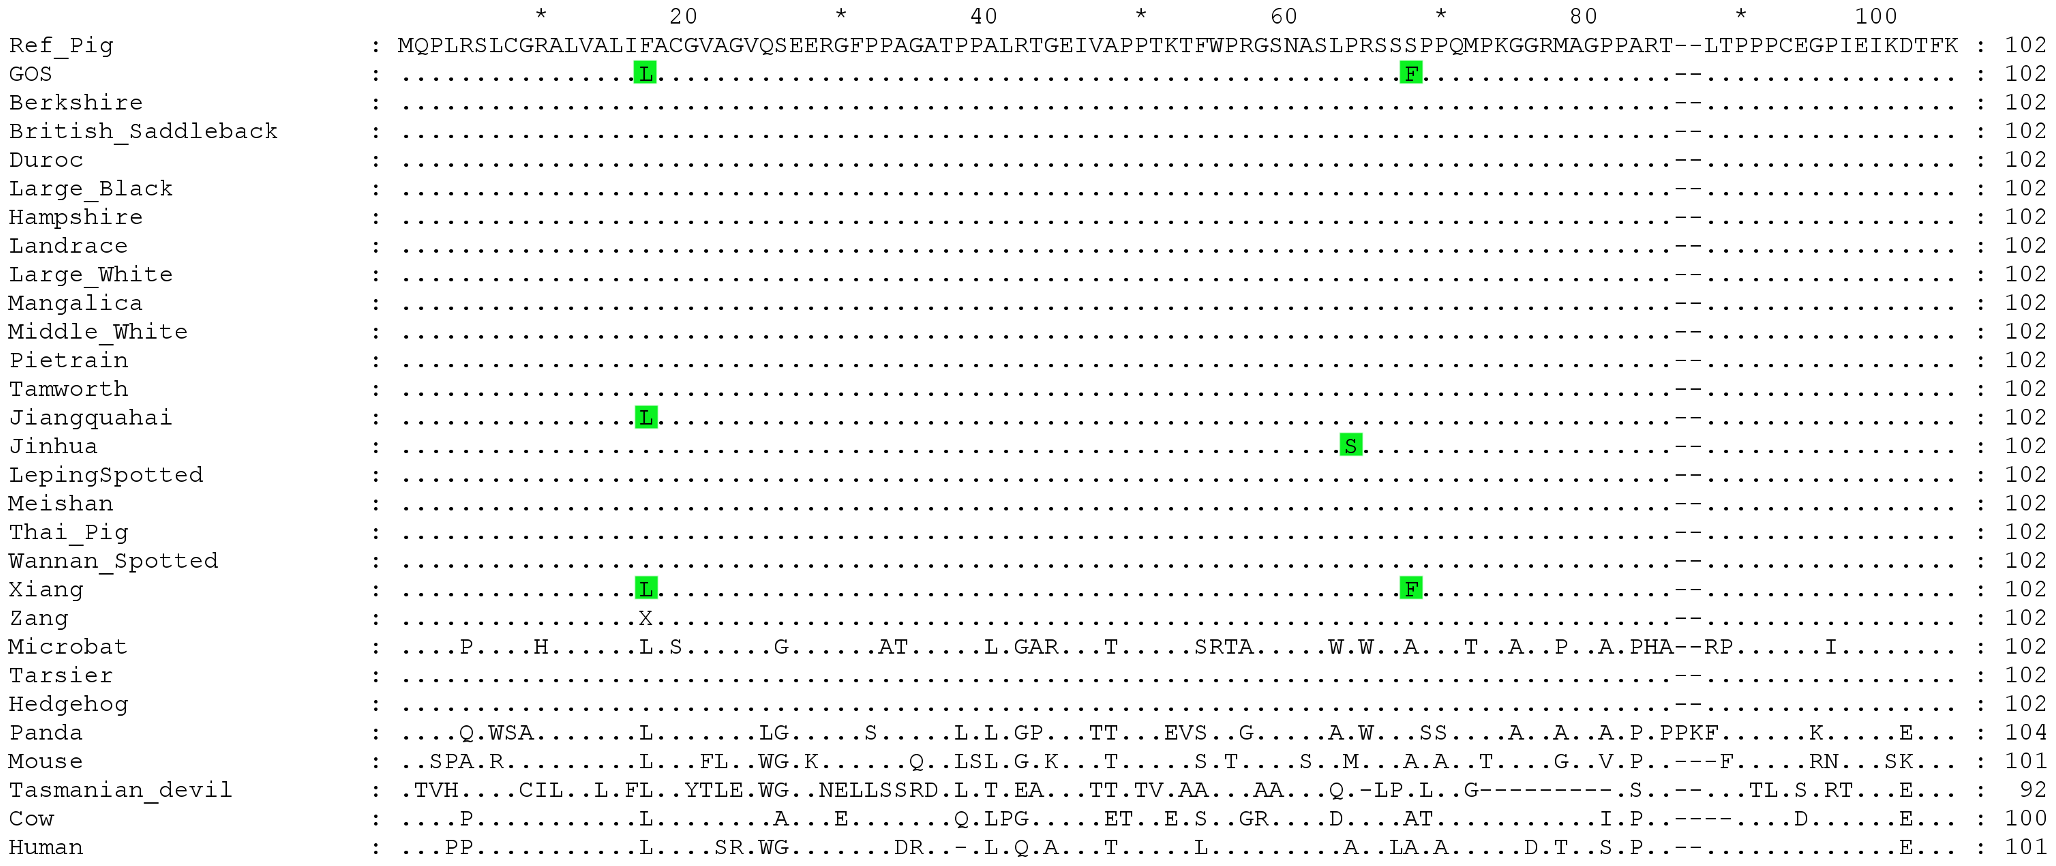 Multiple sequence alignment for the signal peptide and N-terminal extracellular domain of the EDNRB protein.